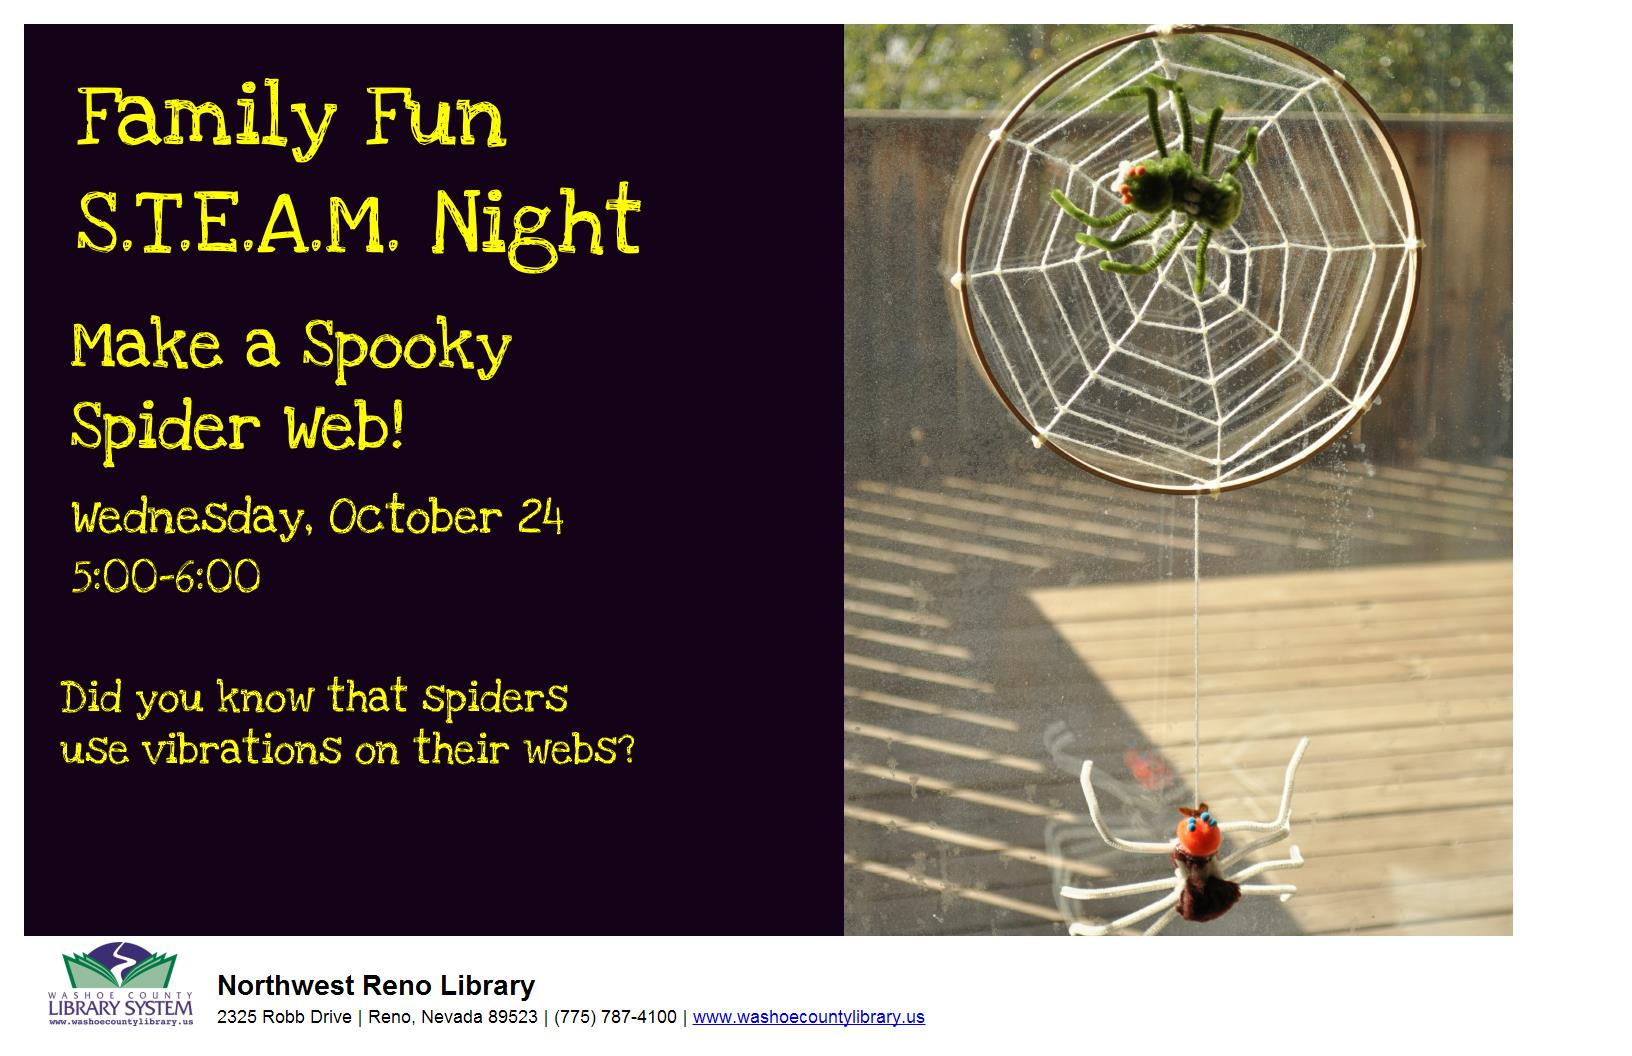 Family Fun STEAM Night: Make a Spooky Spider Web